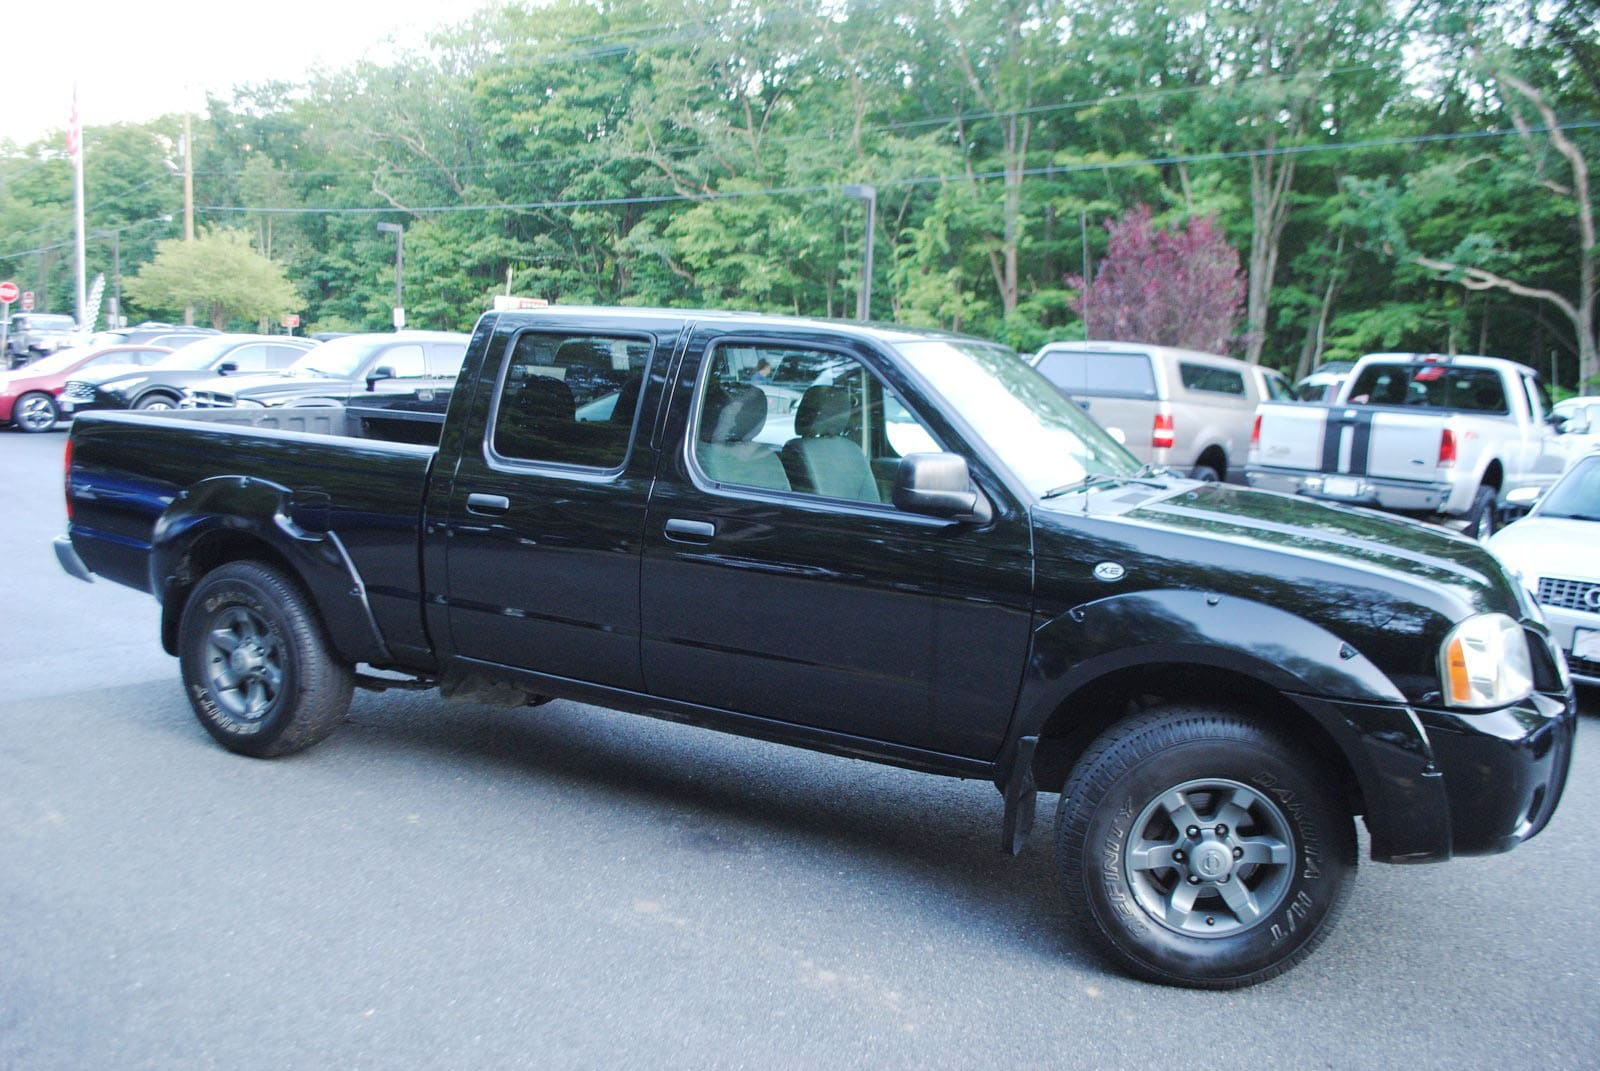 ... 2004 Nissan Frontier XE 3.3 Truck Long Bed Crew Cab ...